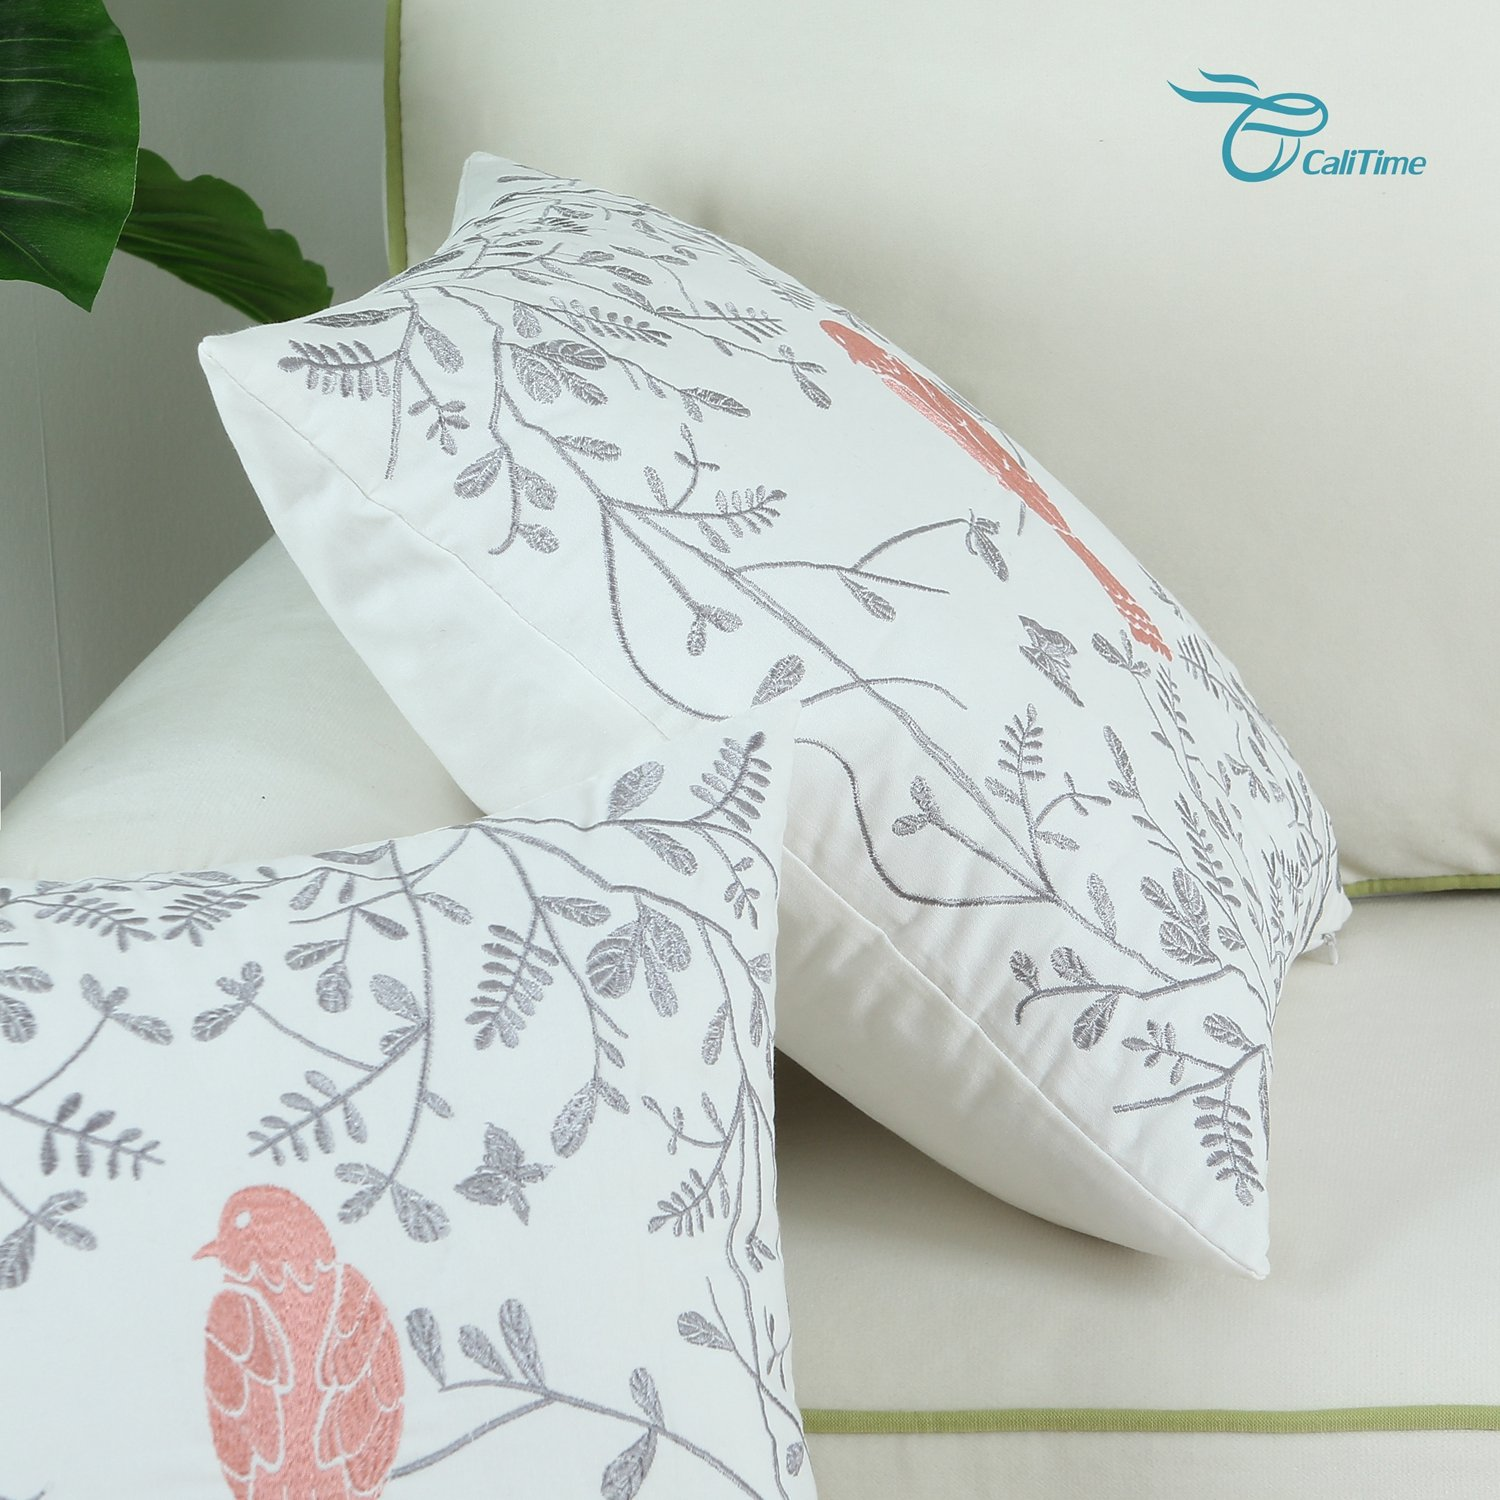 CaliTime Pack of 2 Cotton Throw Pillow Cases Covers for Bed Couch Sofa Cute Bird in Gray Garden Embroidered